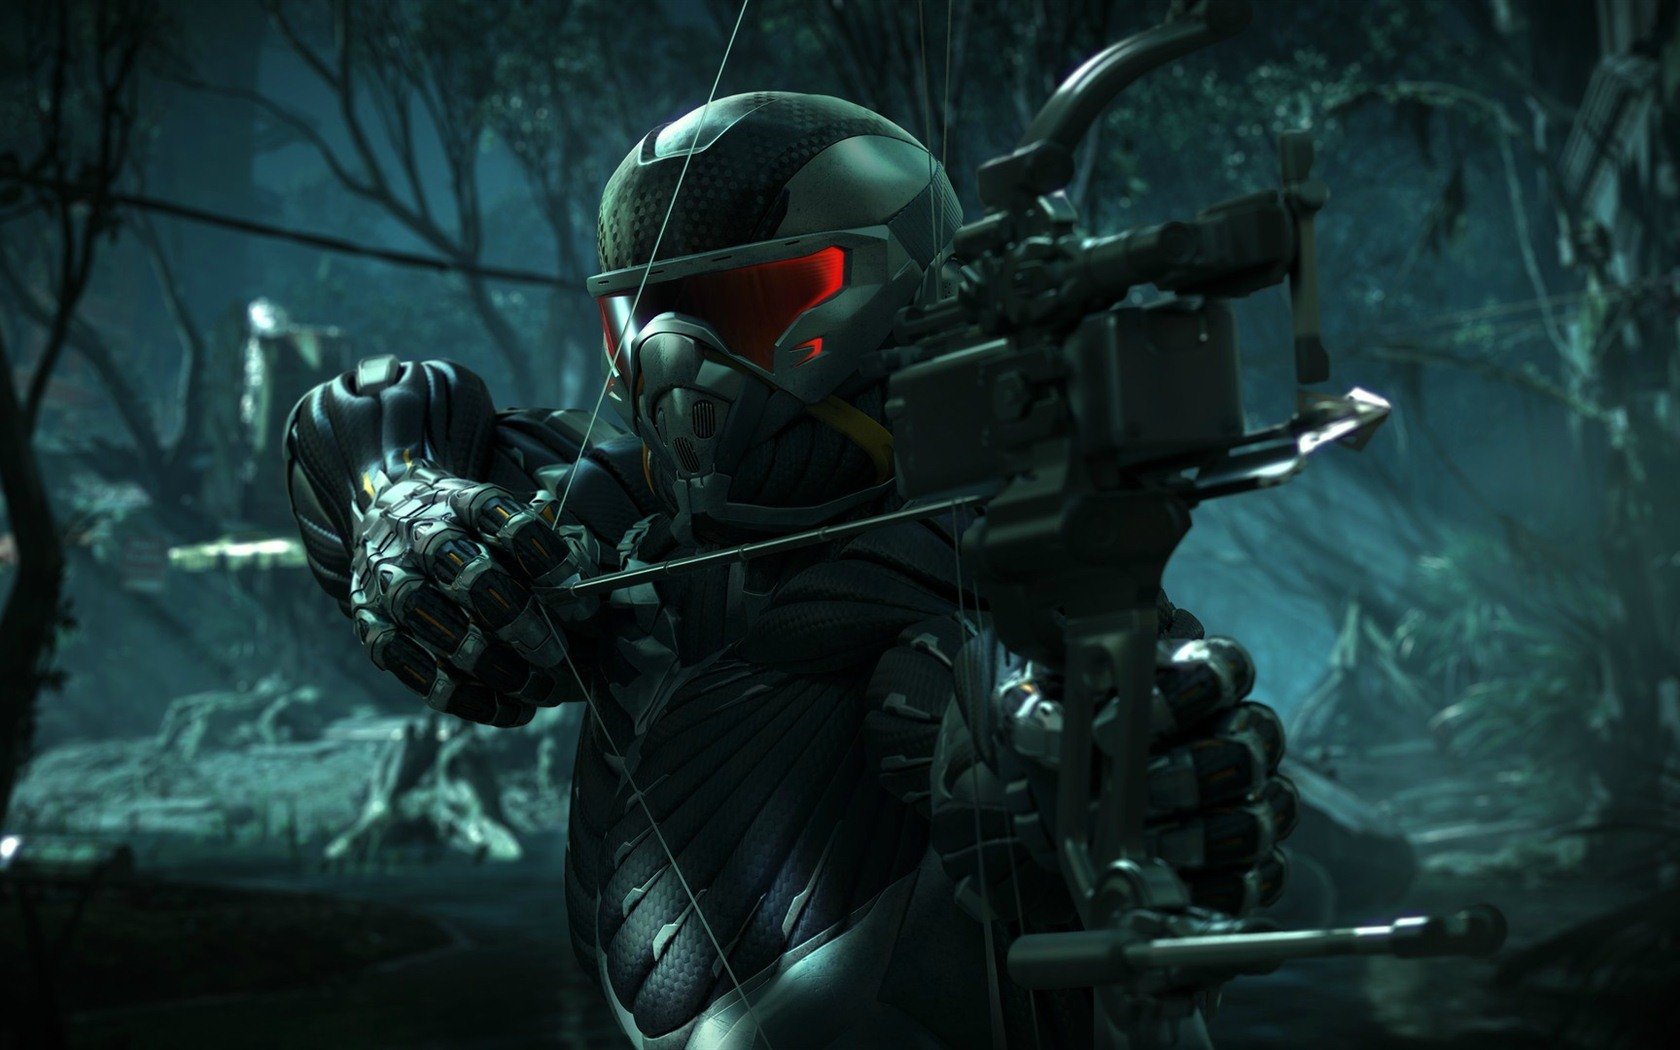 Crysis 3 2013 Video Game 4k Hd Desktop Wallpaper For 4k: 1680x1050 Wallpaper Download